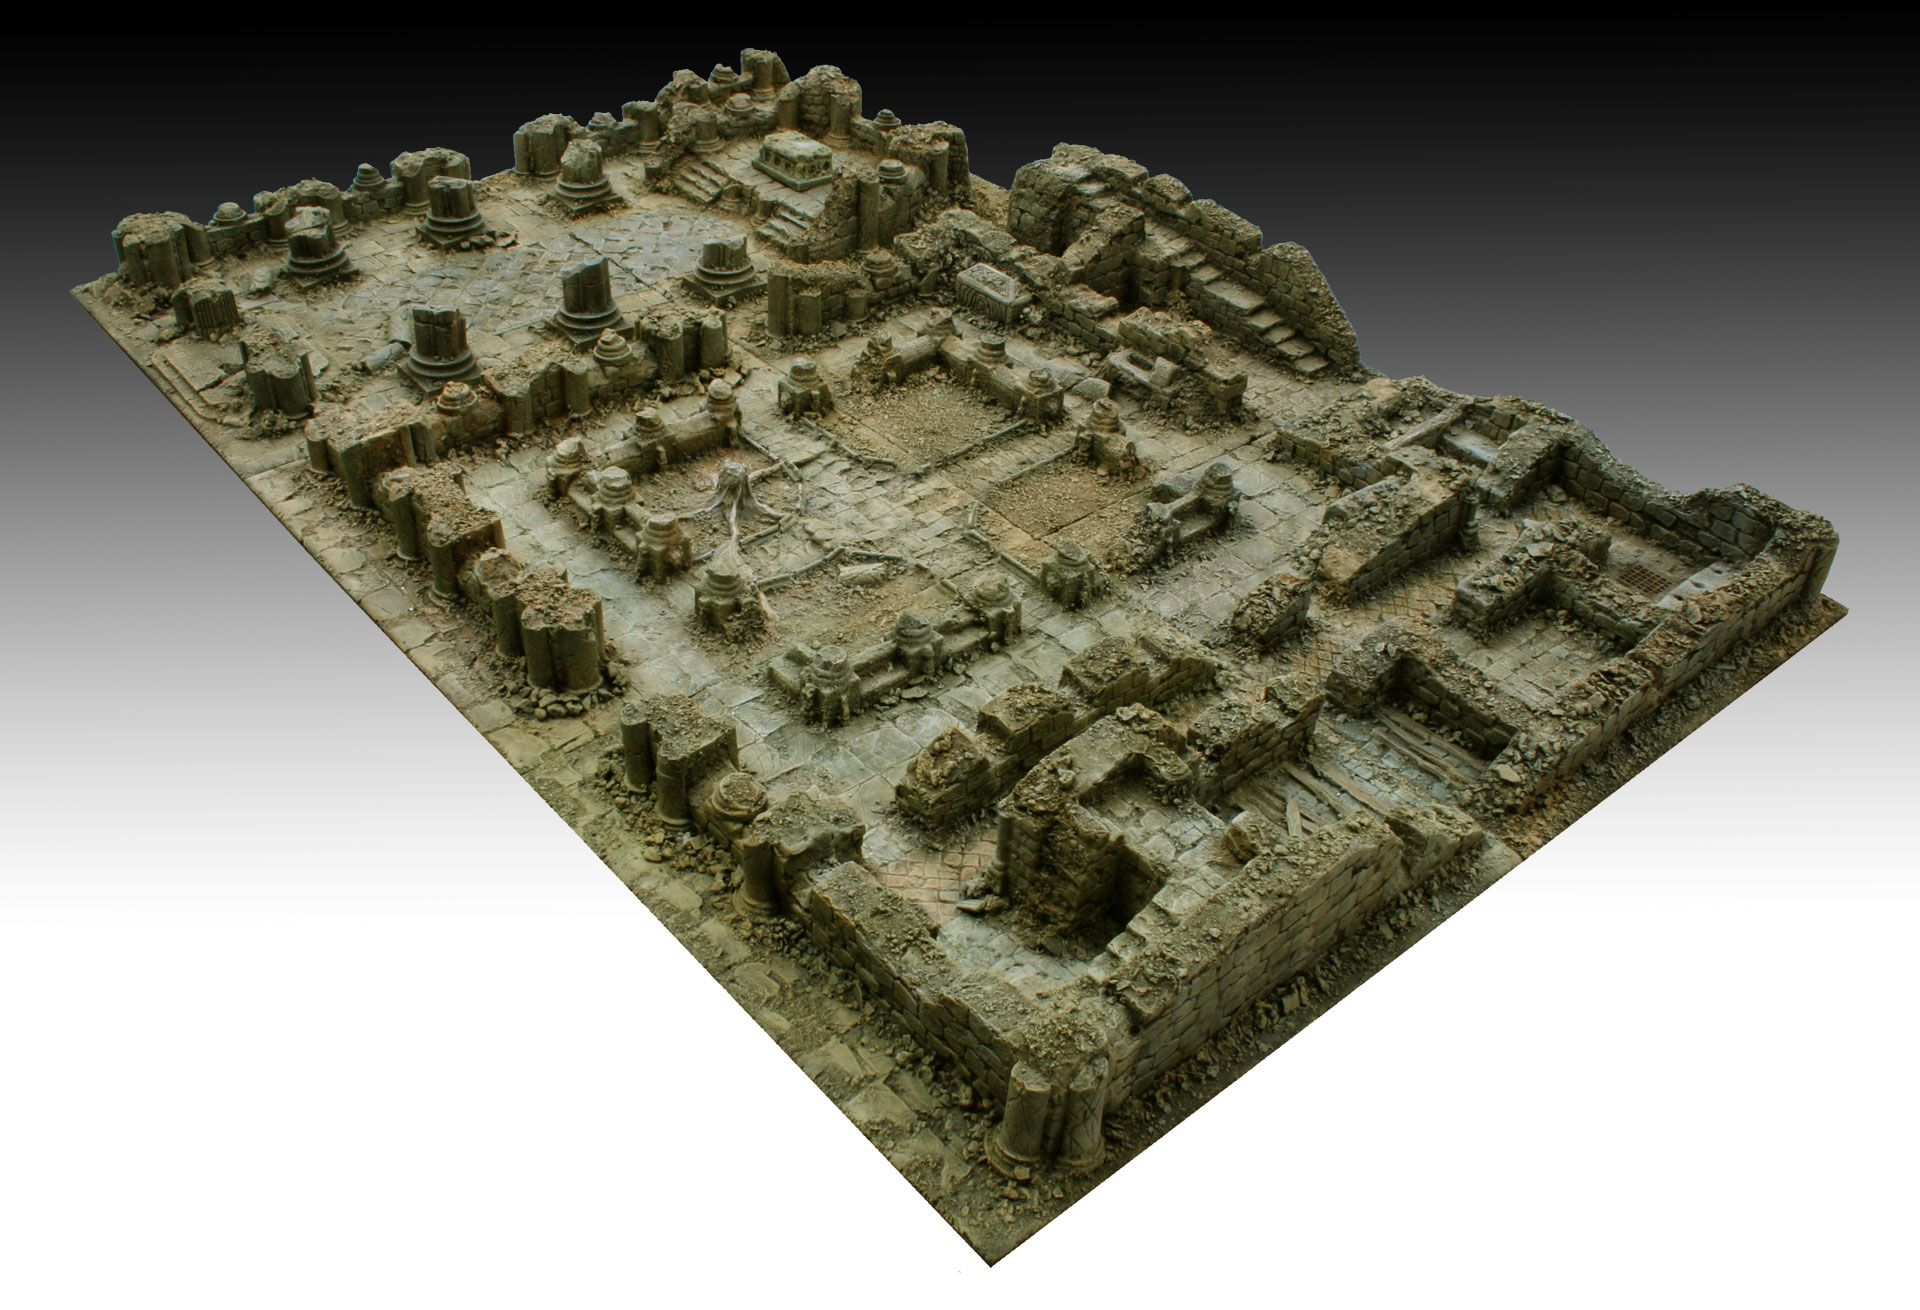 project for kickstarter platform: dedicated to the creation of bases 30x30 cm. for 3D tabletops for wargames and skirmish in 28-35 mm. - Master - 94 https://manorhouseworkshop.com/2016/02/23/update-12-3d-bases-modular-terrain-completed-the-abbey-and-cloister-in-ruin/